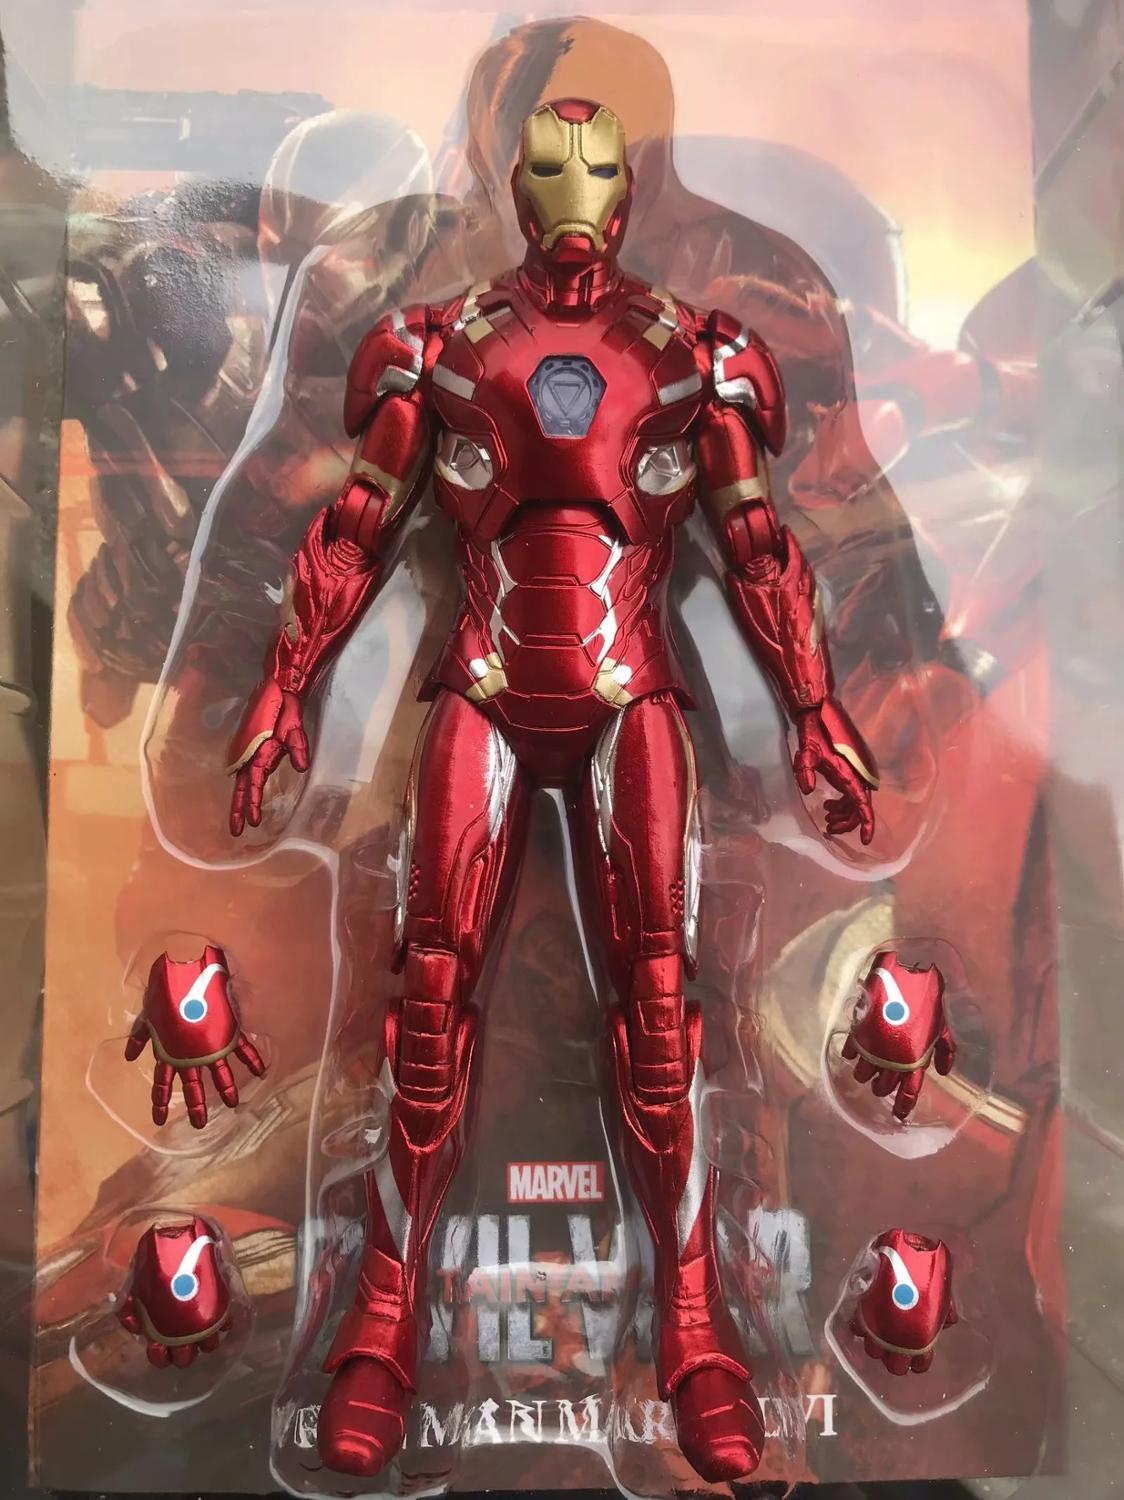 17cm Marvel Iron Man Light Movable Avengers Movie Action Figure PVC Collection Model Toys For Christmas Gift